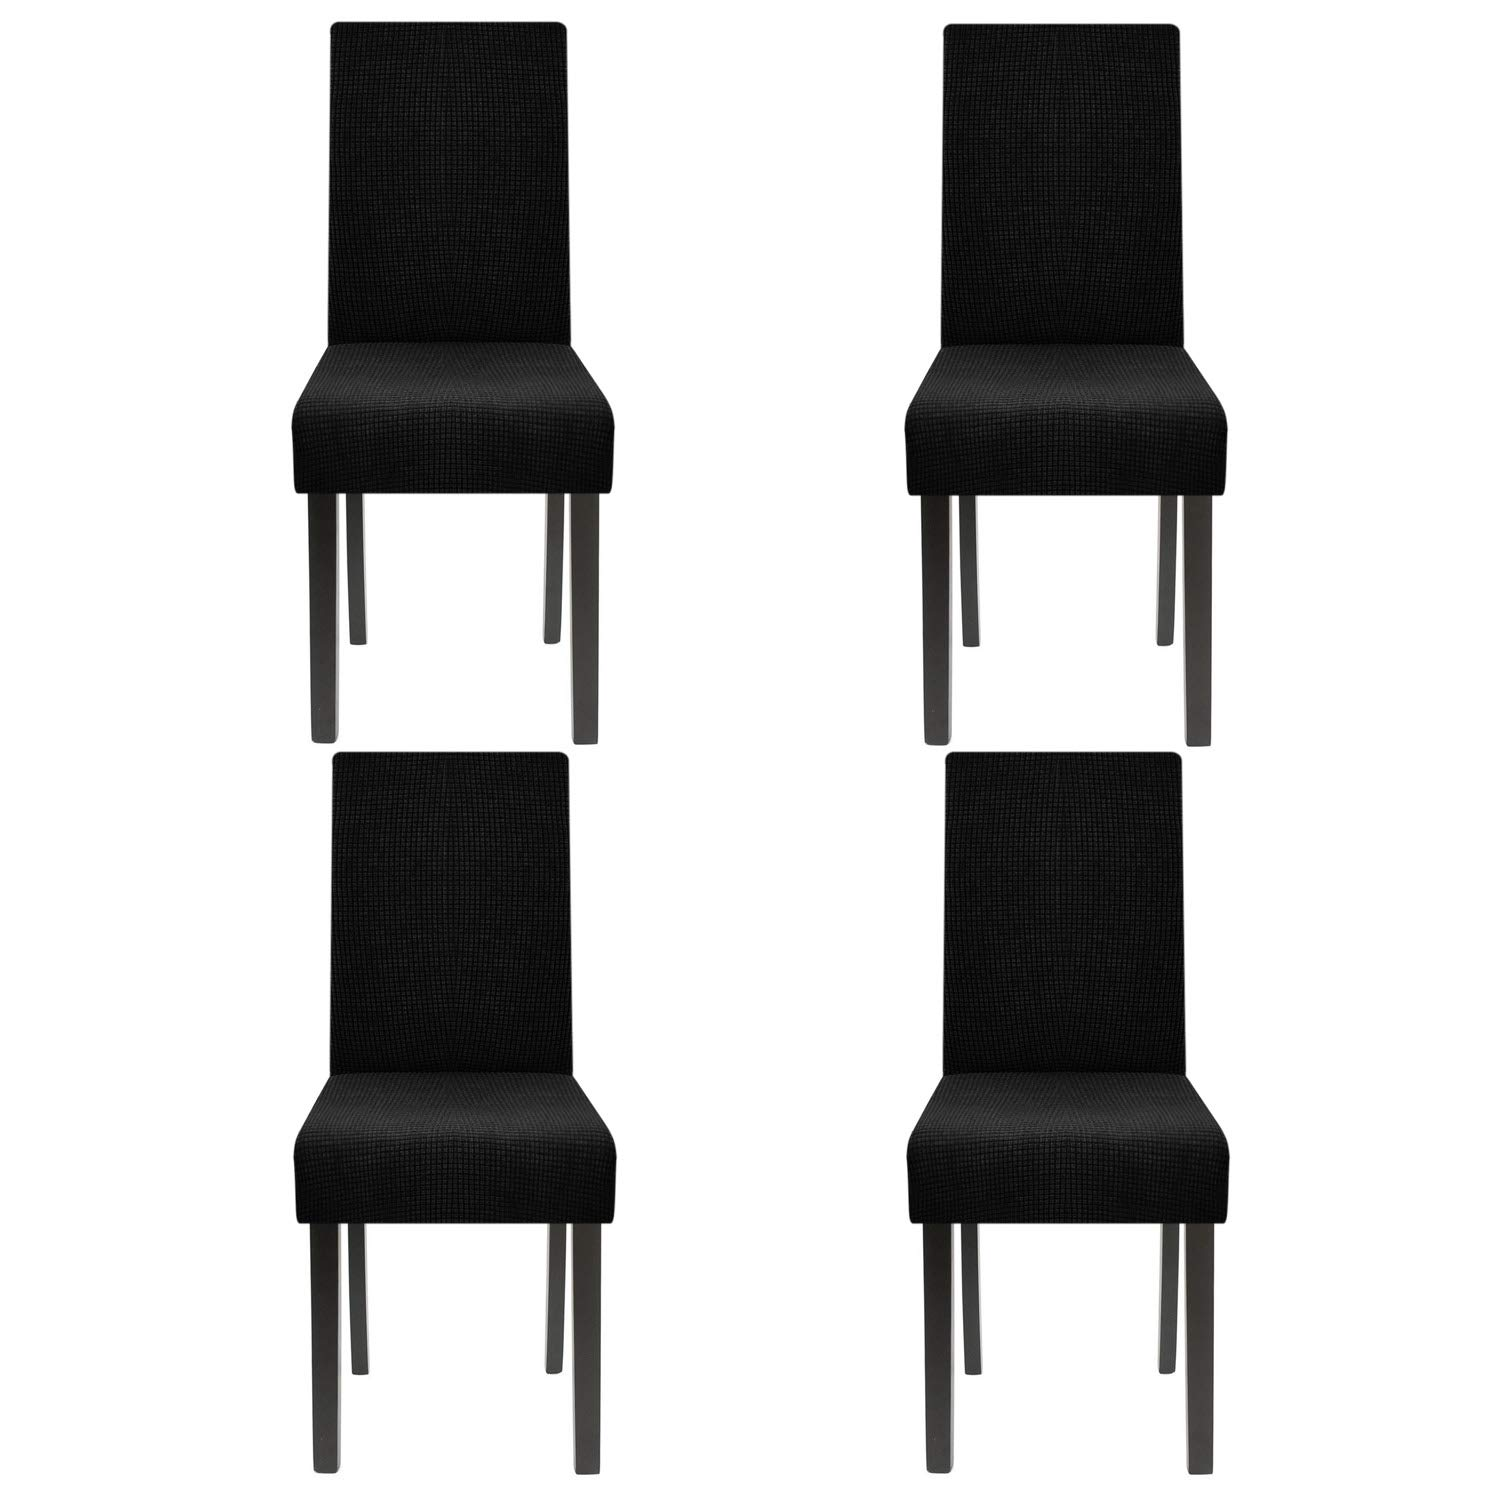 Homluxe High Stretch Chair Covers Dining Room Water Repellent Fabric Parson Chair Slipcovers (2, Black) Huada E-Commerce